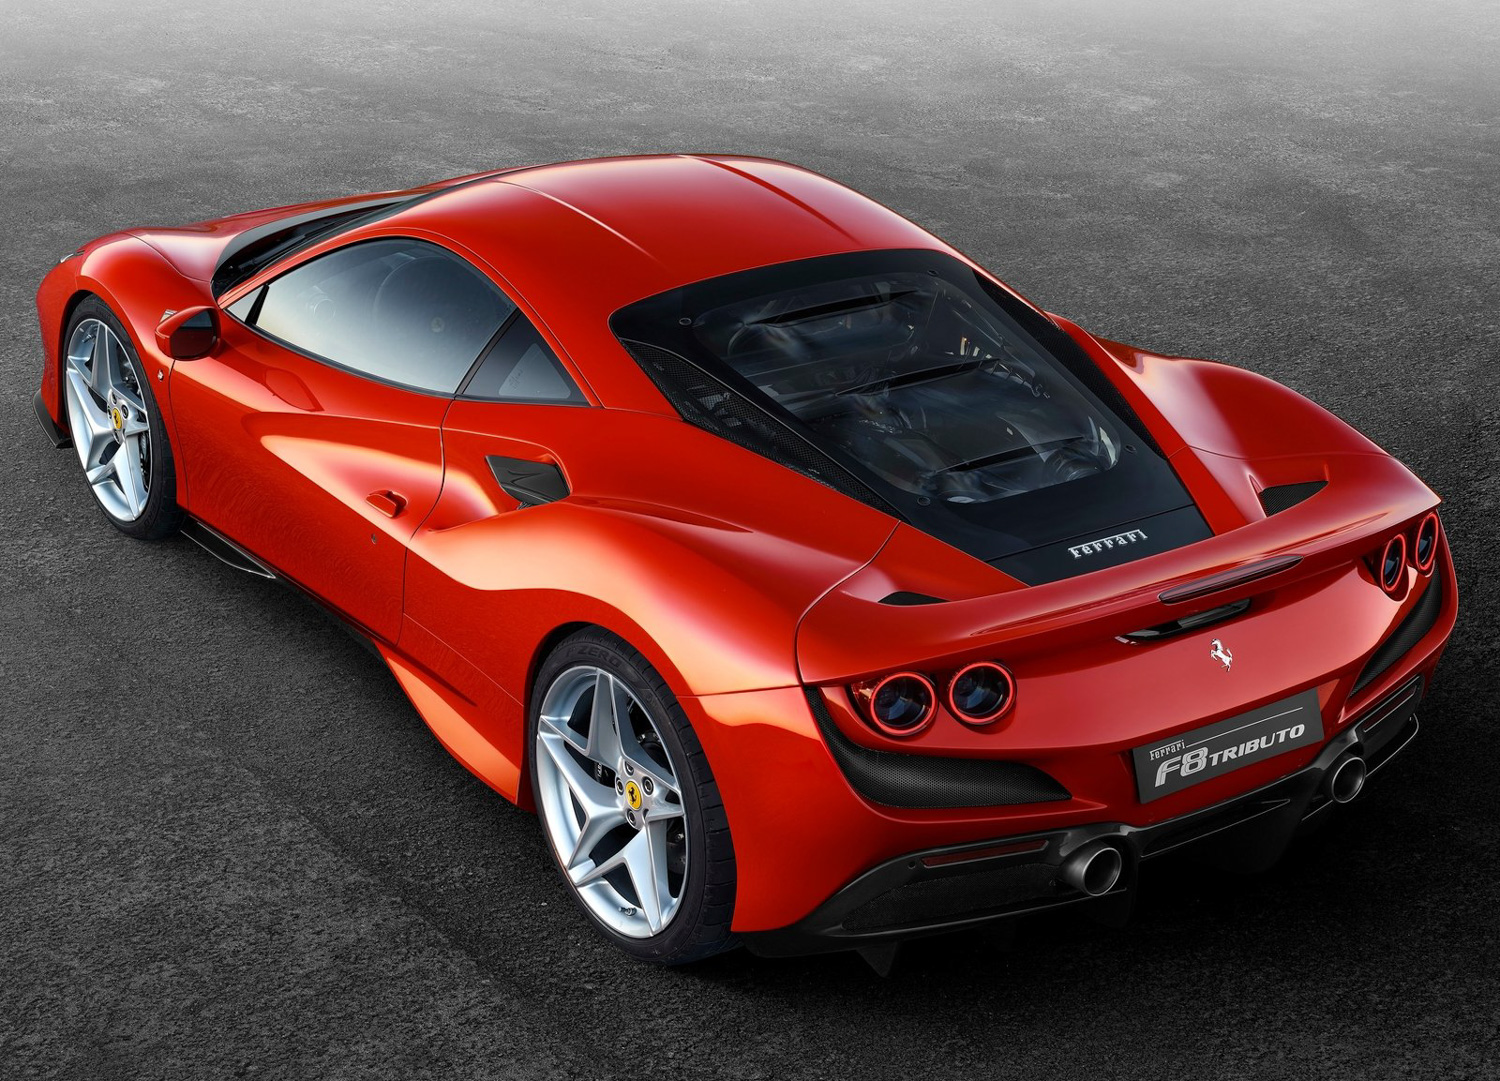 2020 Ferrari F8 Tributo rear 3/4 view high